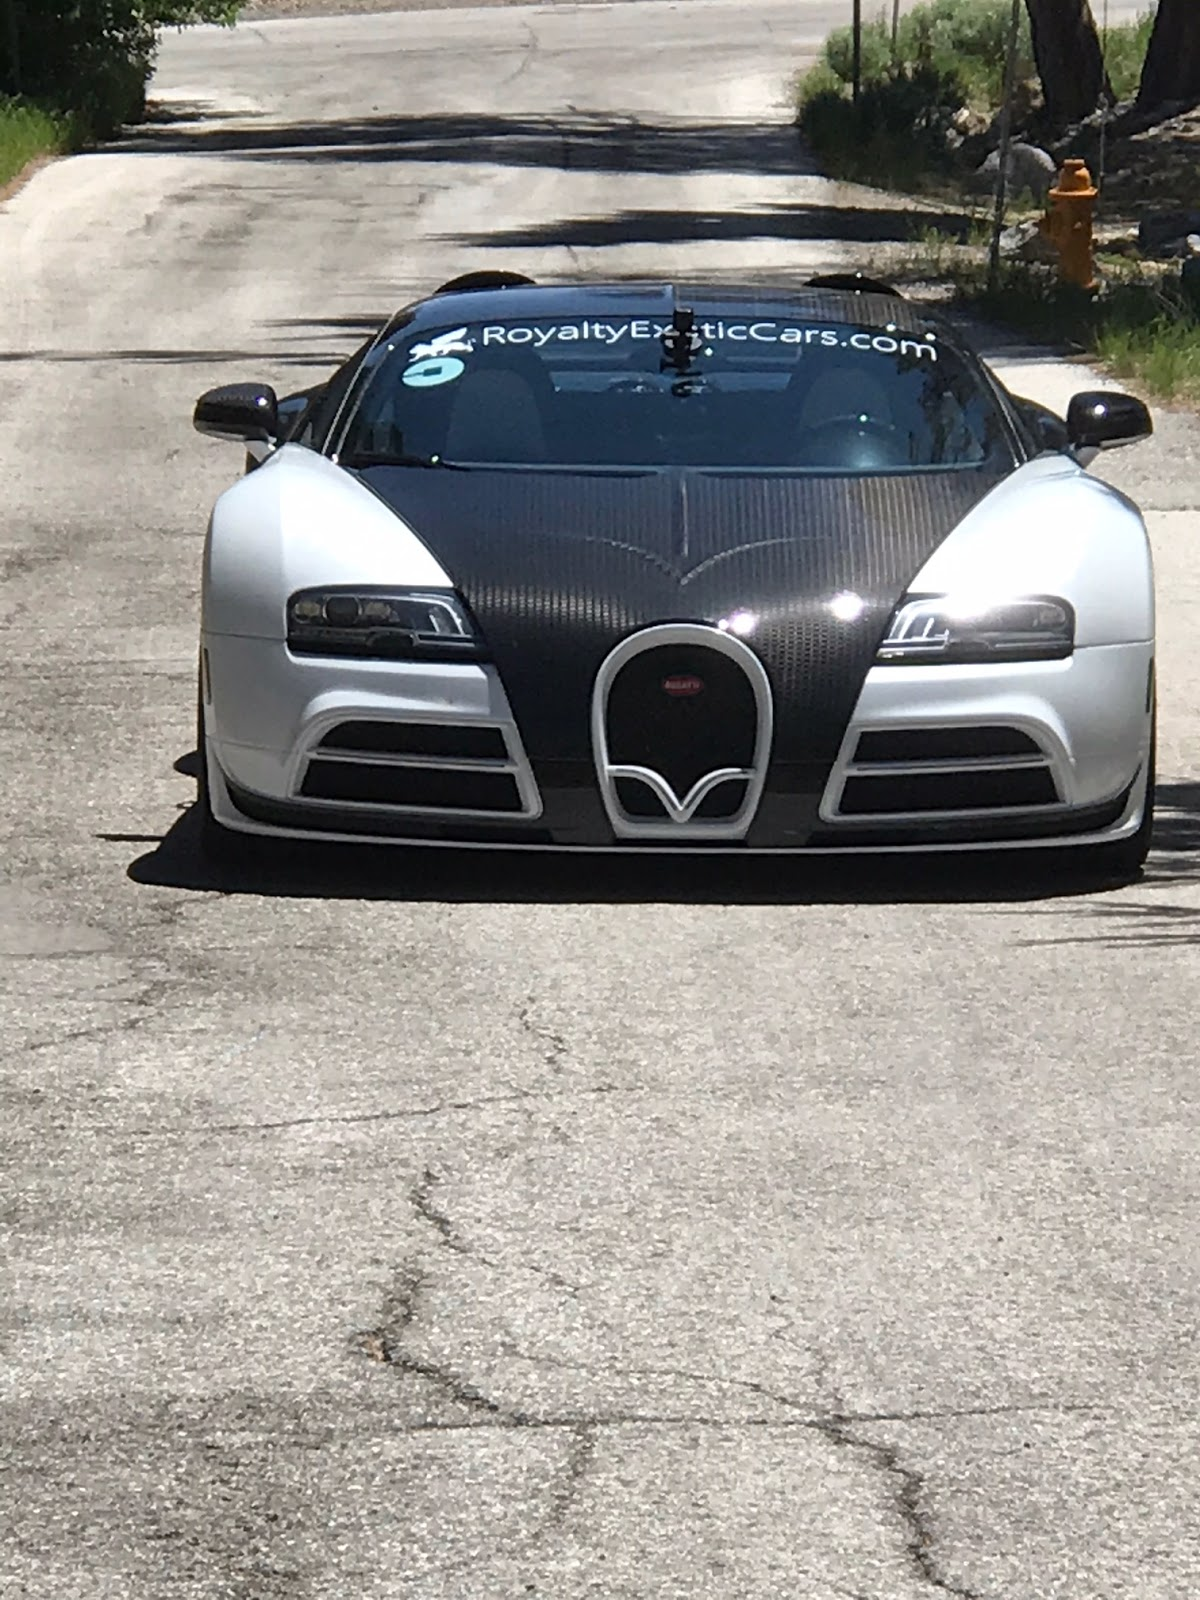 Tamerlane S Thoughts Spotted Bugatti Veyron Mansory Vivere